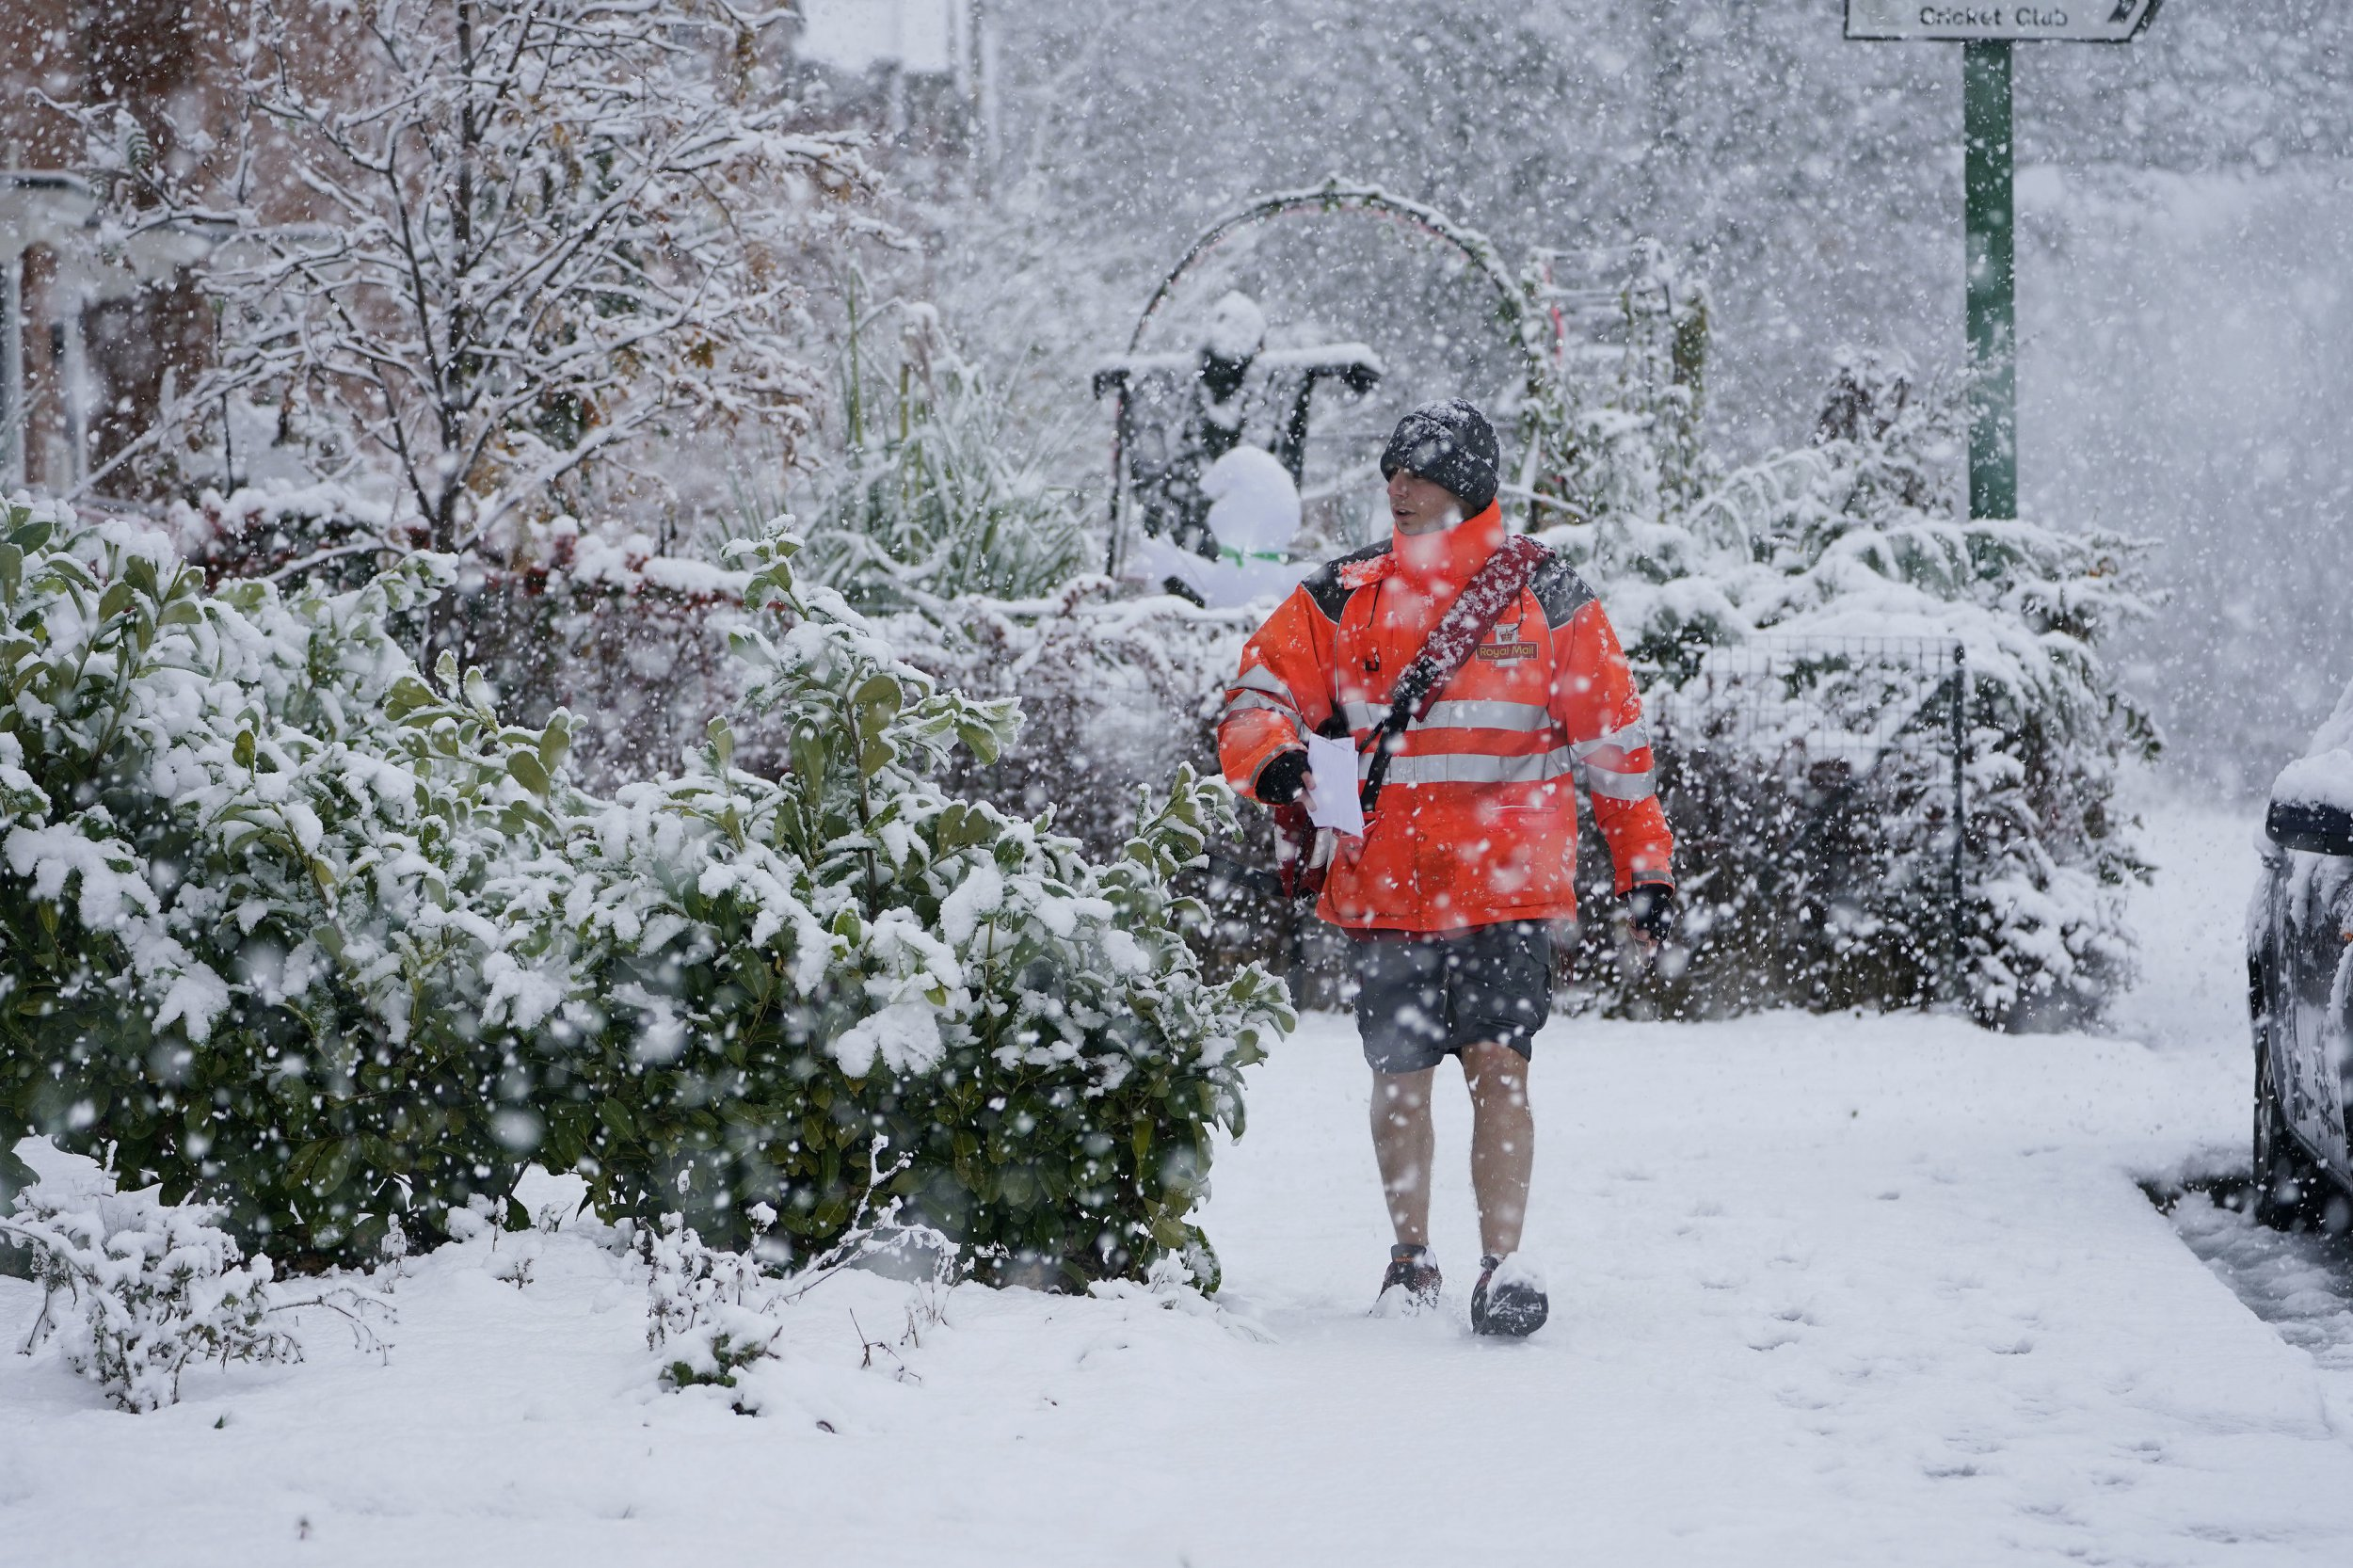 A postman in shorts delivers mail in the snow near Consett, County Durham. PRESS ASSOCIATION Photo. Picture date: Saturday October 27, 2018. Forecasters said that cold air sweeping in from the Arctic is set to bring frosty conditions to the UK, with snow and sleet in northern parts. See PA story WEATHER Snow. Photo credit should read: Owen Humphreys/PA Wire